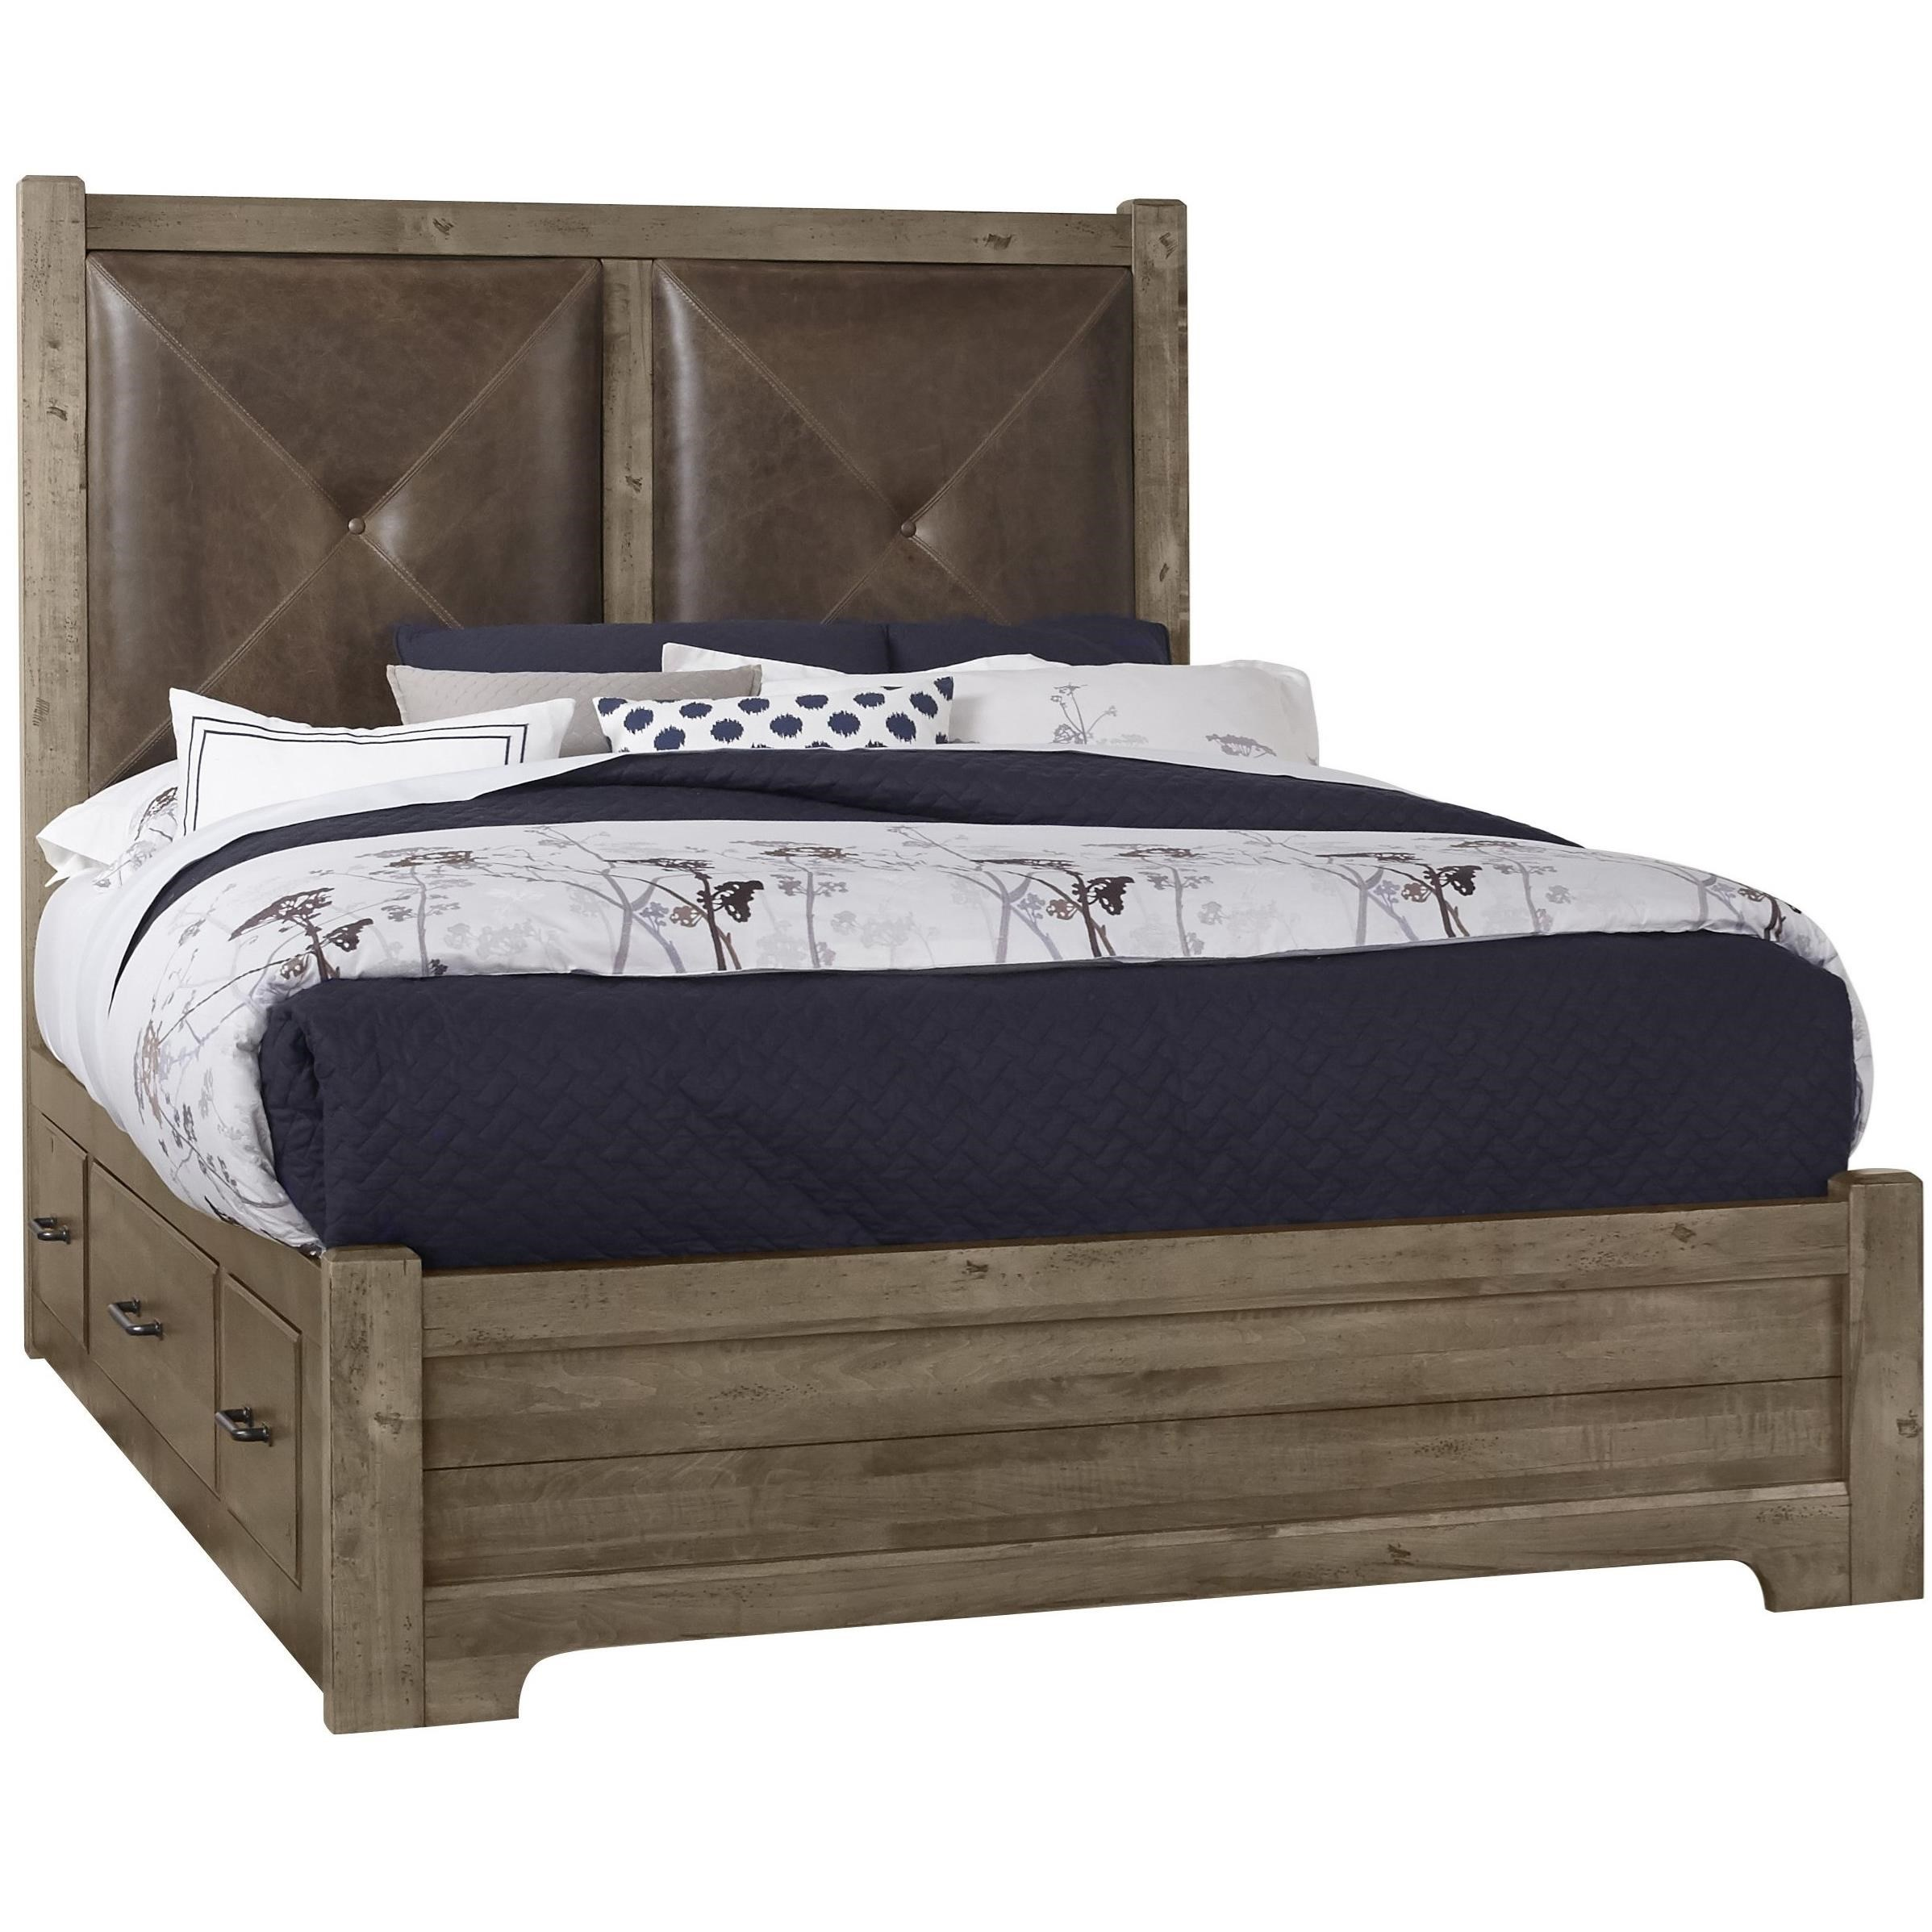 King Leather Bed with Double Side Storage